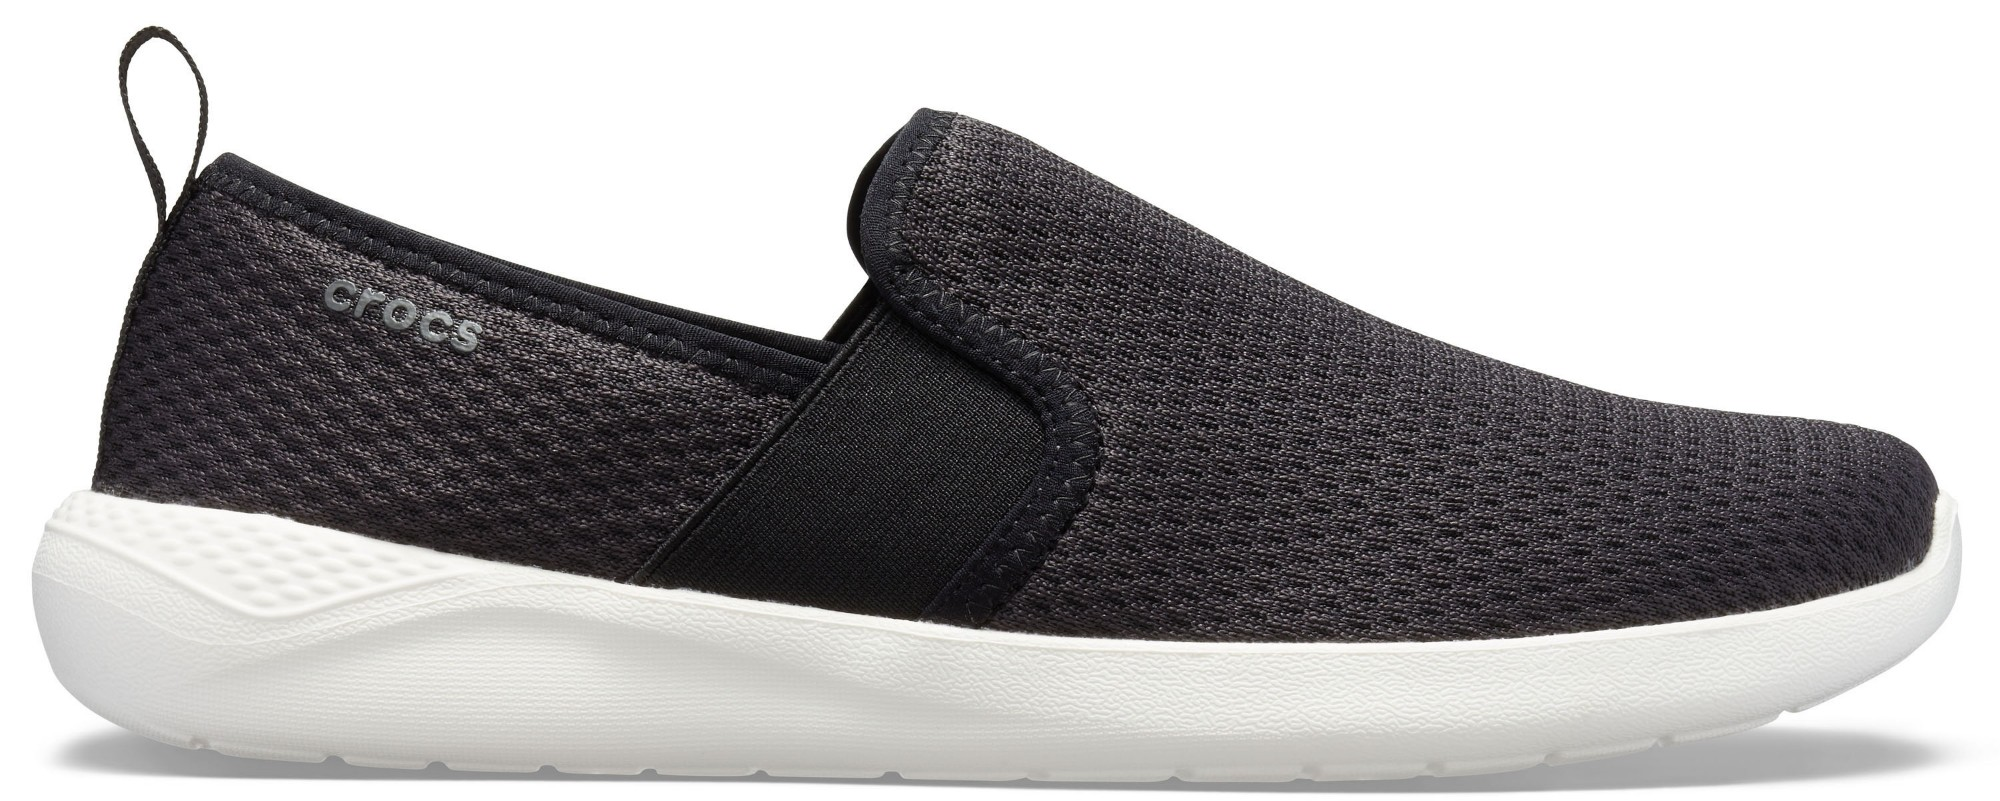 Crocs™ LiteRide Mesh Slip-On Men's Black/White 42,5